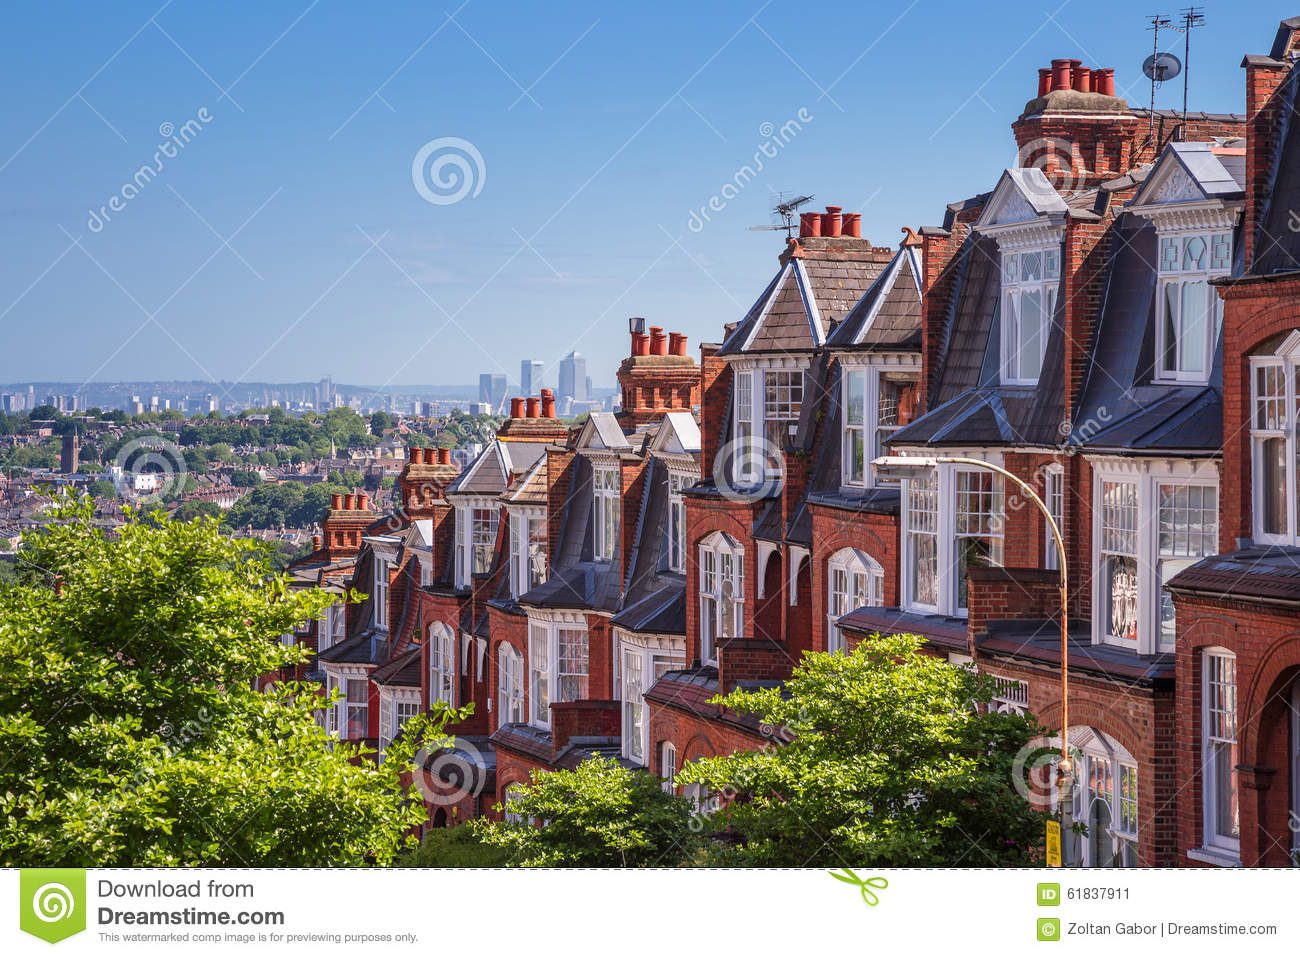 Brick Houses Of Muswell Hill And Panorama Of London With